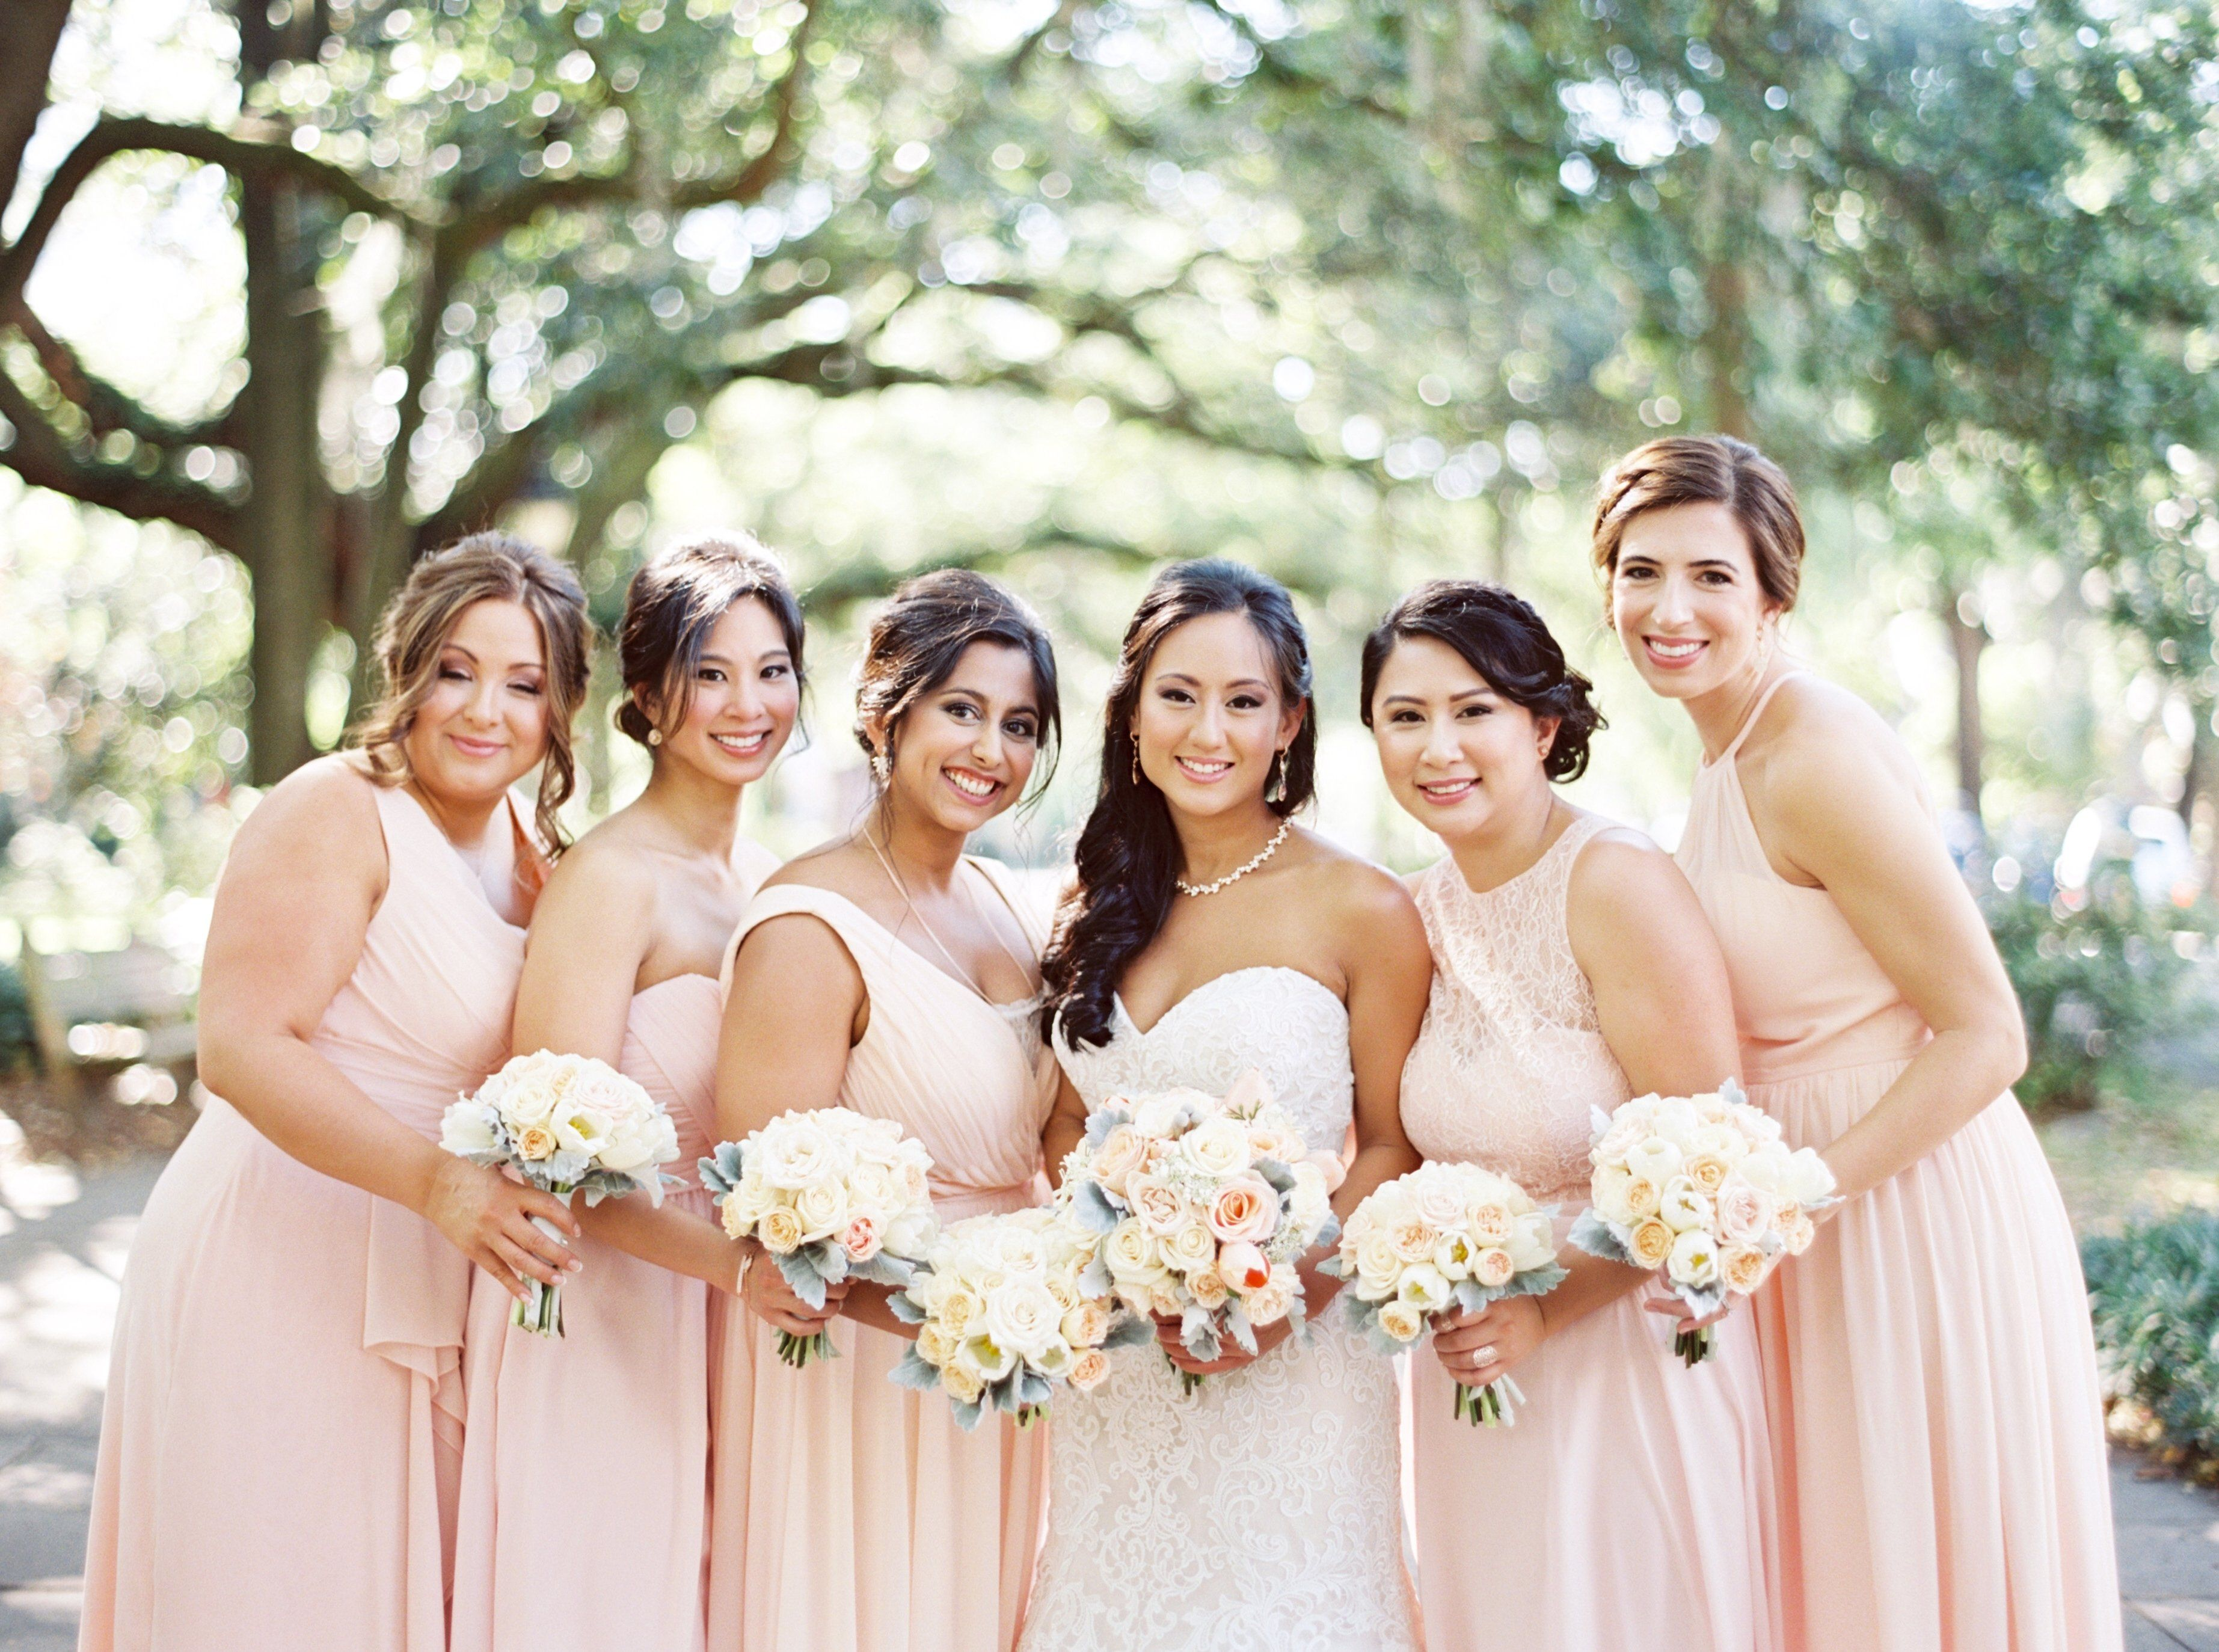 af163d53fb Shop Azazie Bridesmaid Dress - Julianna in Chiffon. Find the perfect  made-to-order bridesmaid dresses for your bridal party in your favorite  color